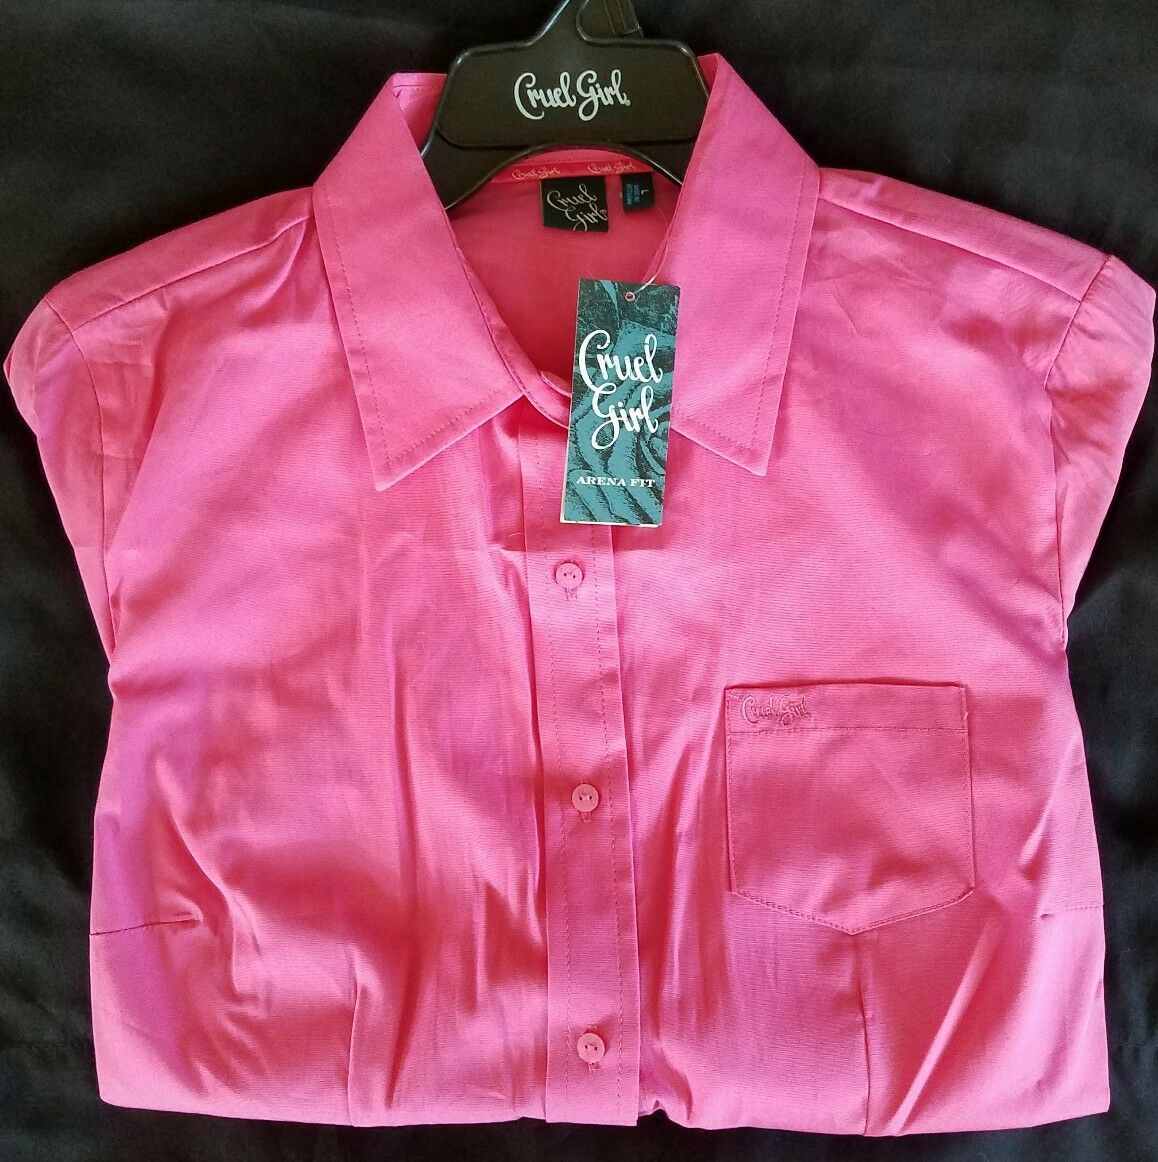 Cruel Girl Arena Fit long sleeve button up shirt. Women's SMALL in pink